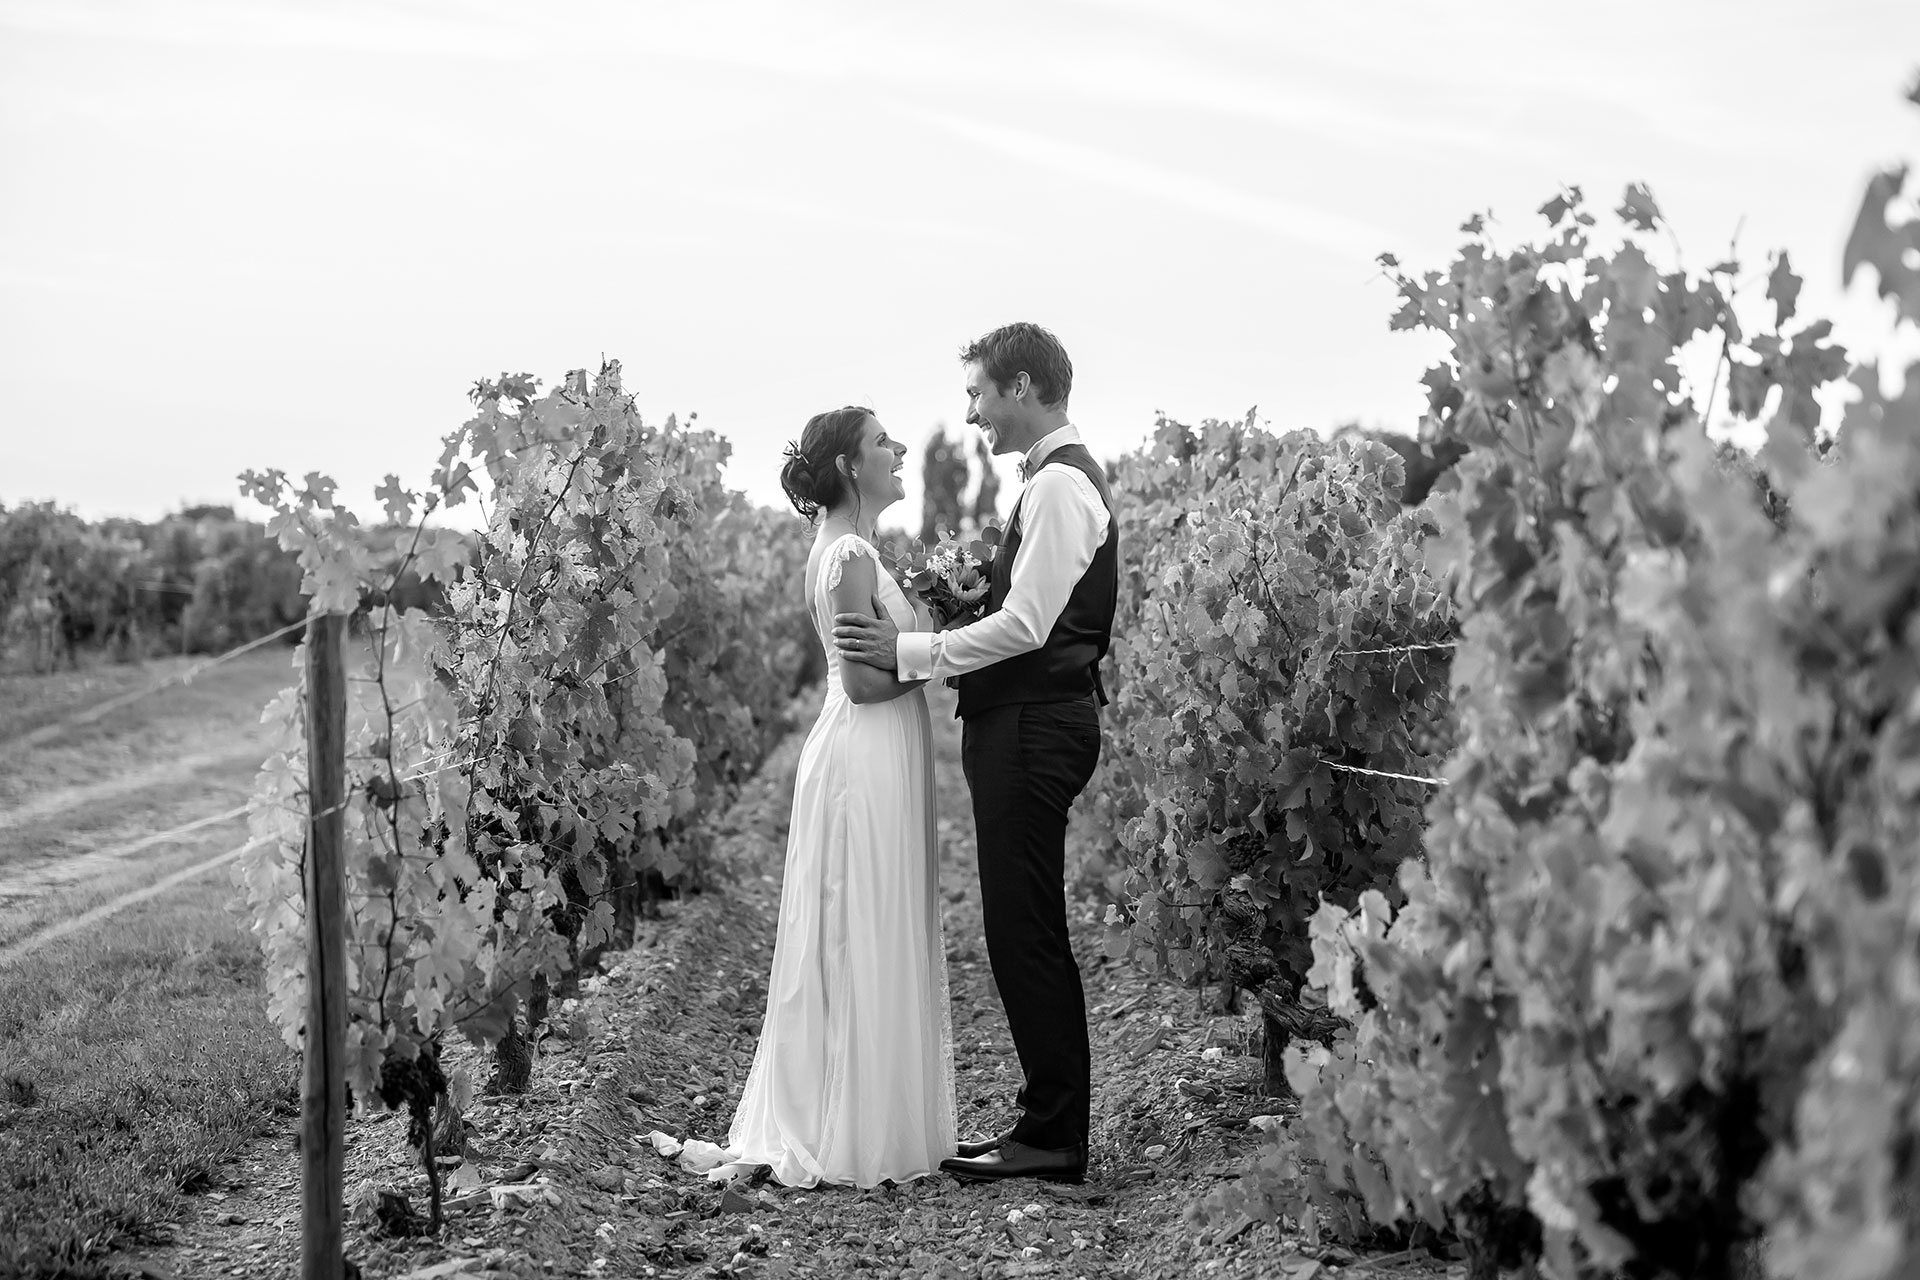 particuliers-evenements-mariage-oui-elise&quentin-84